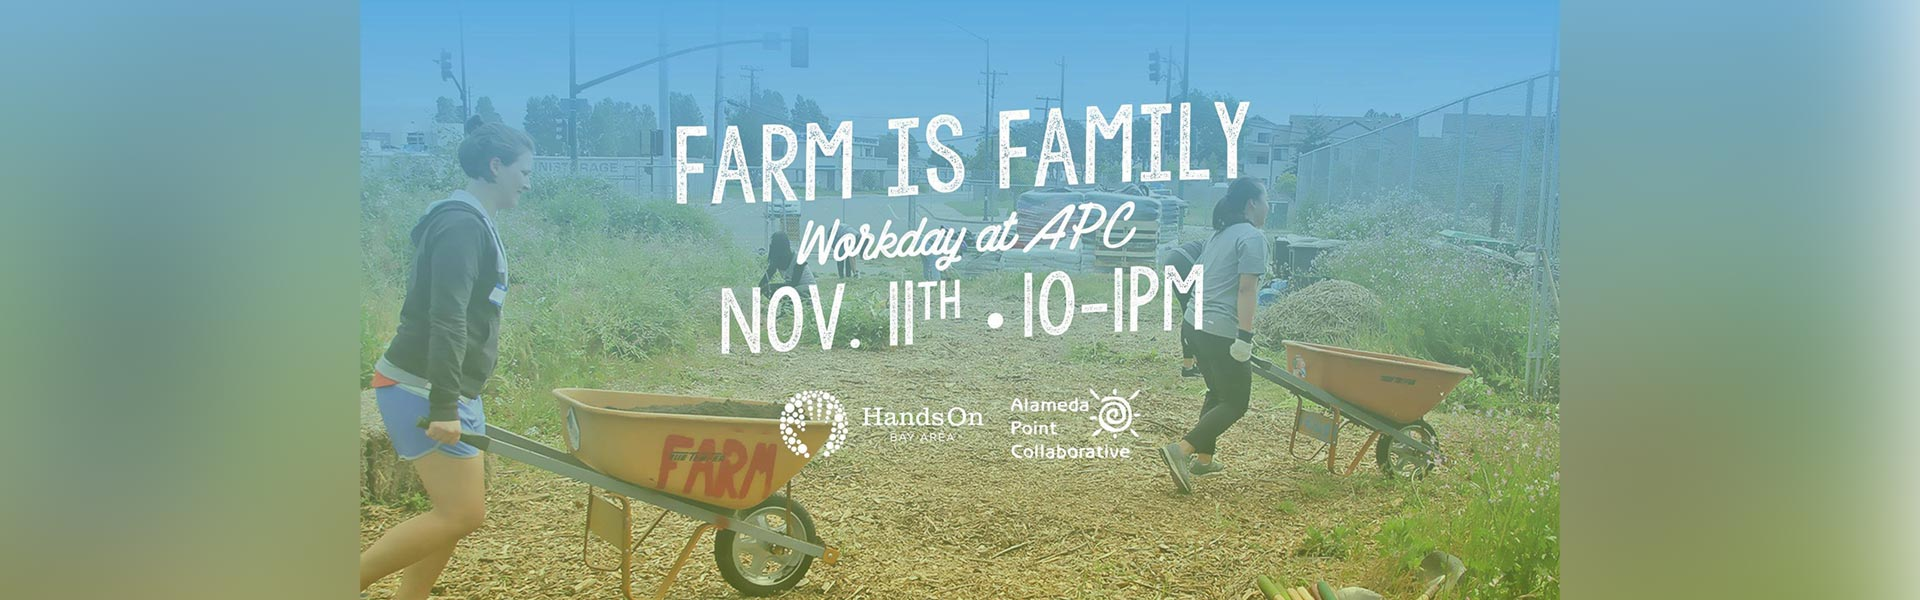 farm is family workday at apc